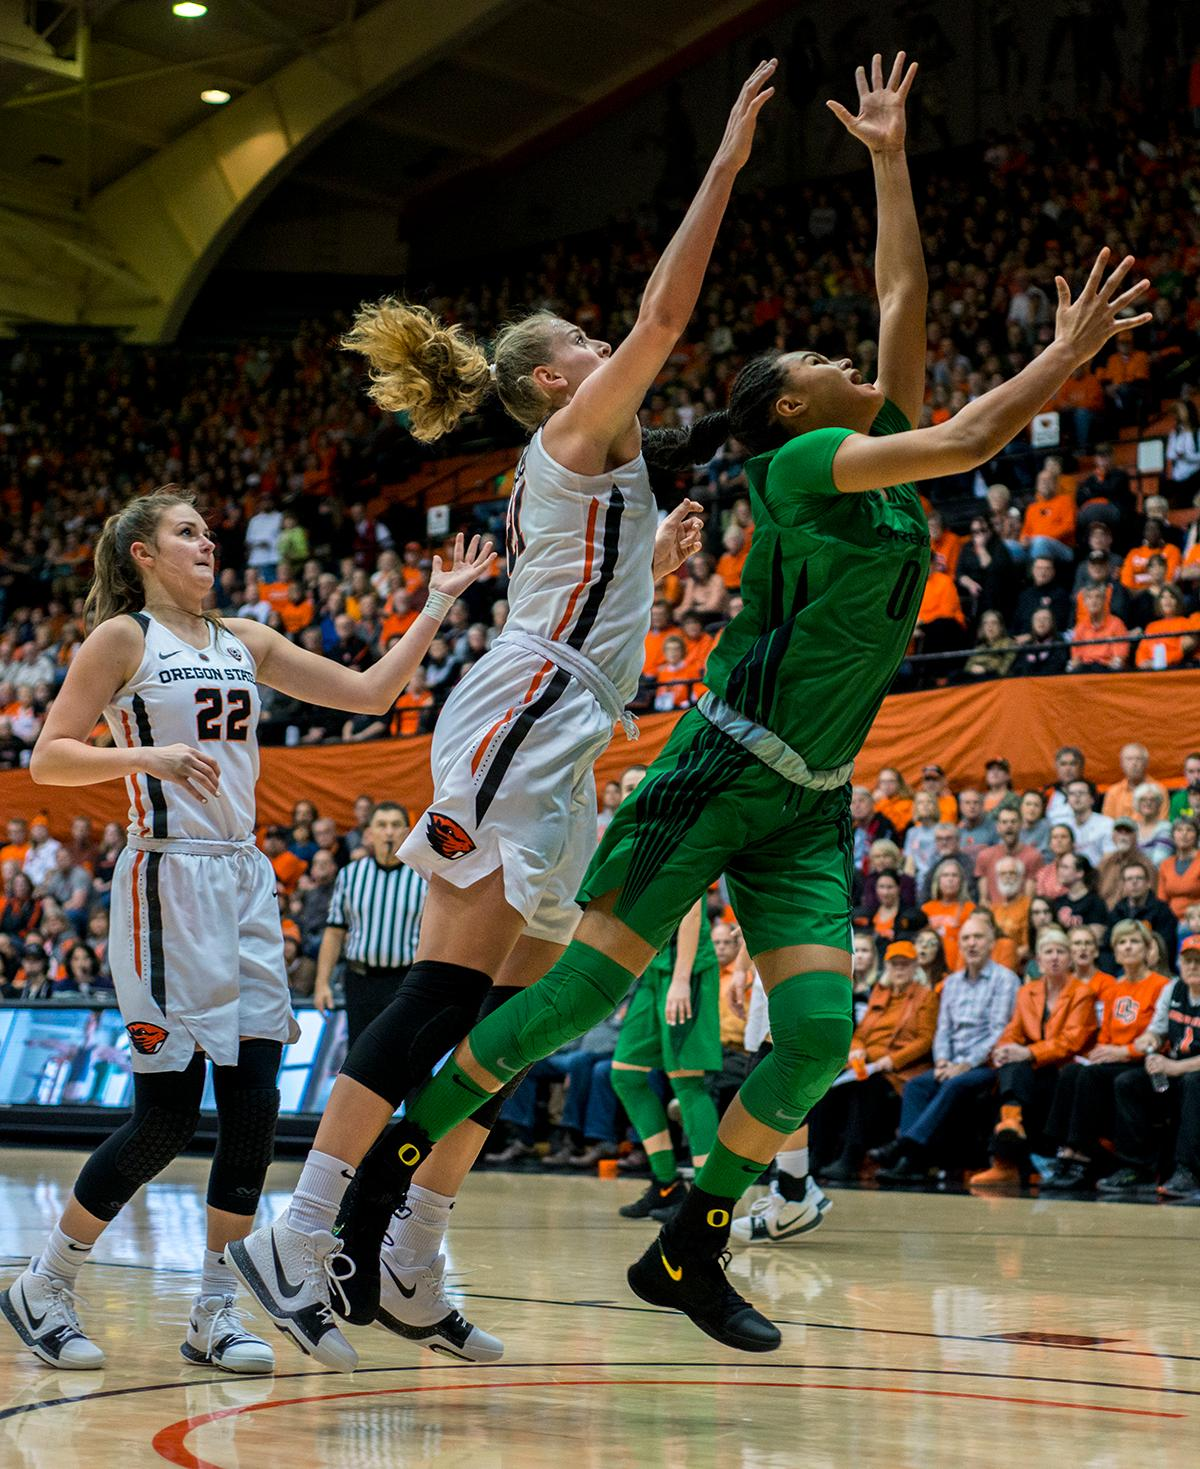 Oregon Ducks forward Satou Sabally (#0) heaves a shot toward the basket as the Oregon State Beavers defense leaps to block.The Oregon Ducks were defeated by the Oregon State Beavers 85-79 on Friday night in Corvallis. Sabrina Ionescu scored 35 points and Ruthy Hebard added 24. The Ducks will face the Beavers this Sunday at 5 p.m. at Matthew Knight Arena. Photo by Abigail Winn, Oregon News Lab